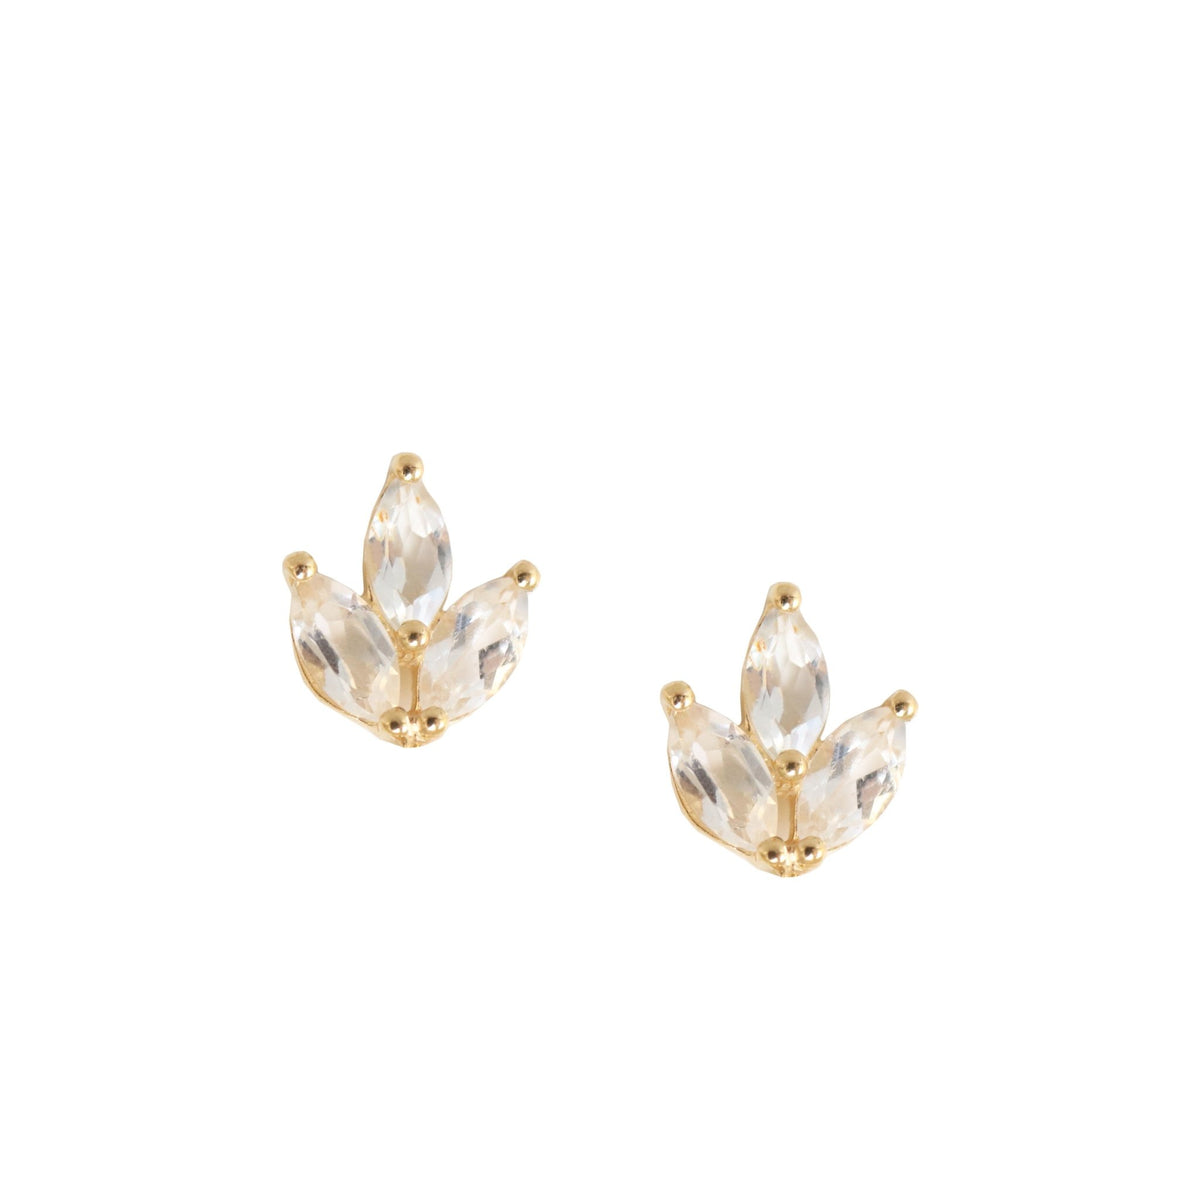 FRAICHE INSPIRE CRYSTAL OLIVE LEAF STUDS - WHITE TOPAZ & GOLD - SO PRETTY CARA COTTER